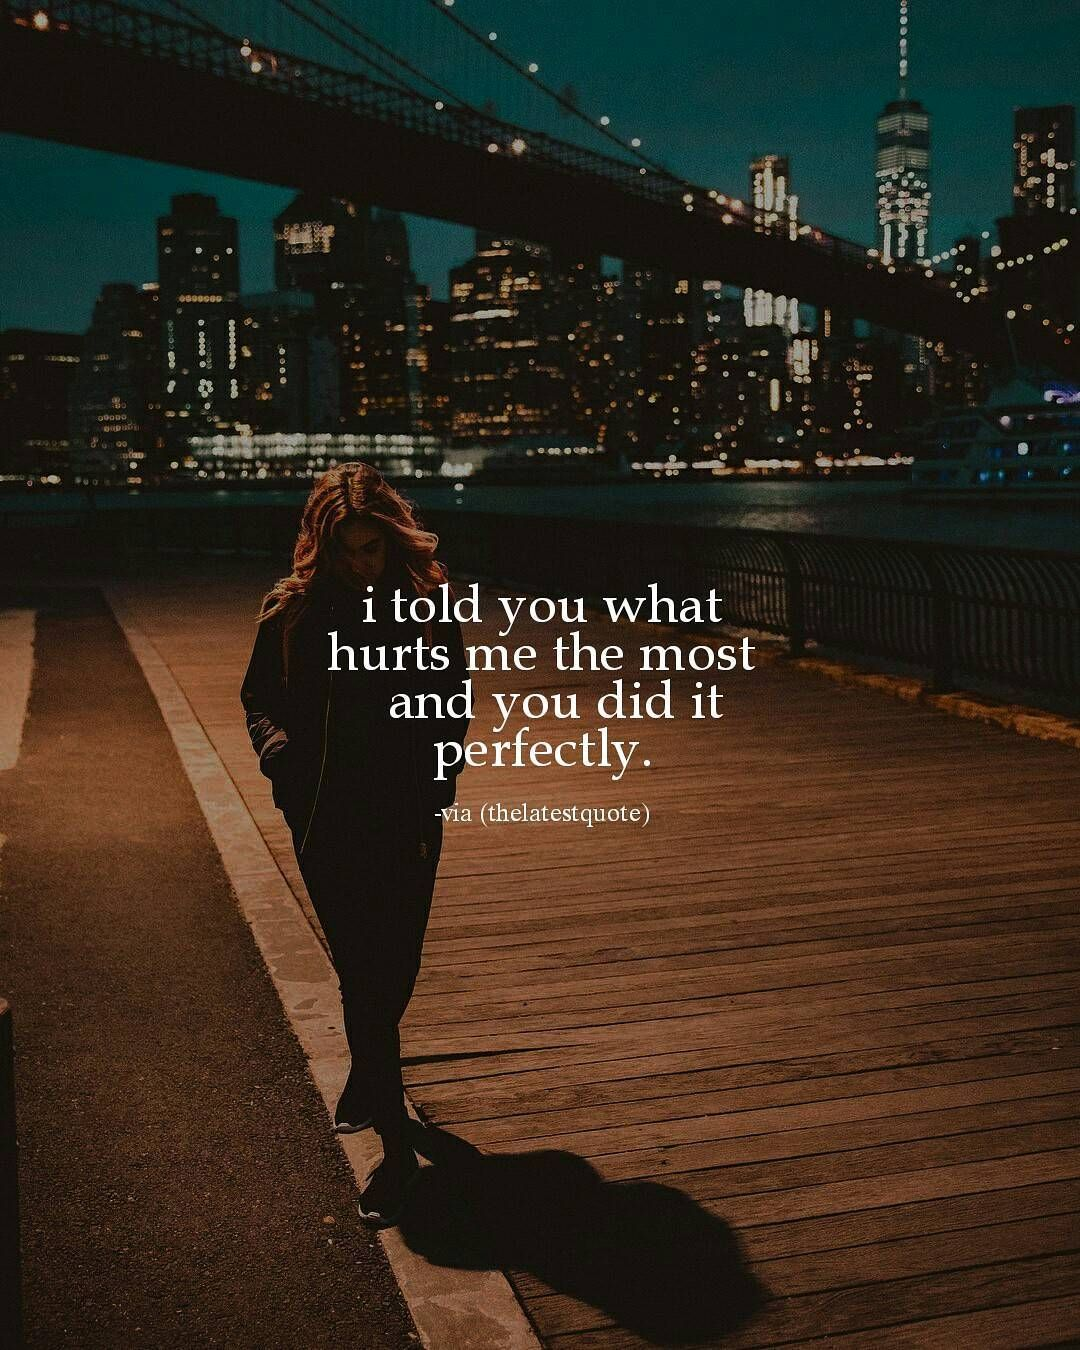 I Told You What Hurts Me The Most And You Did It Perfectly